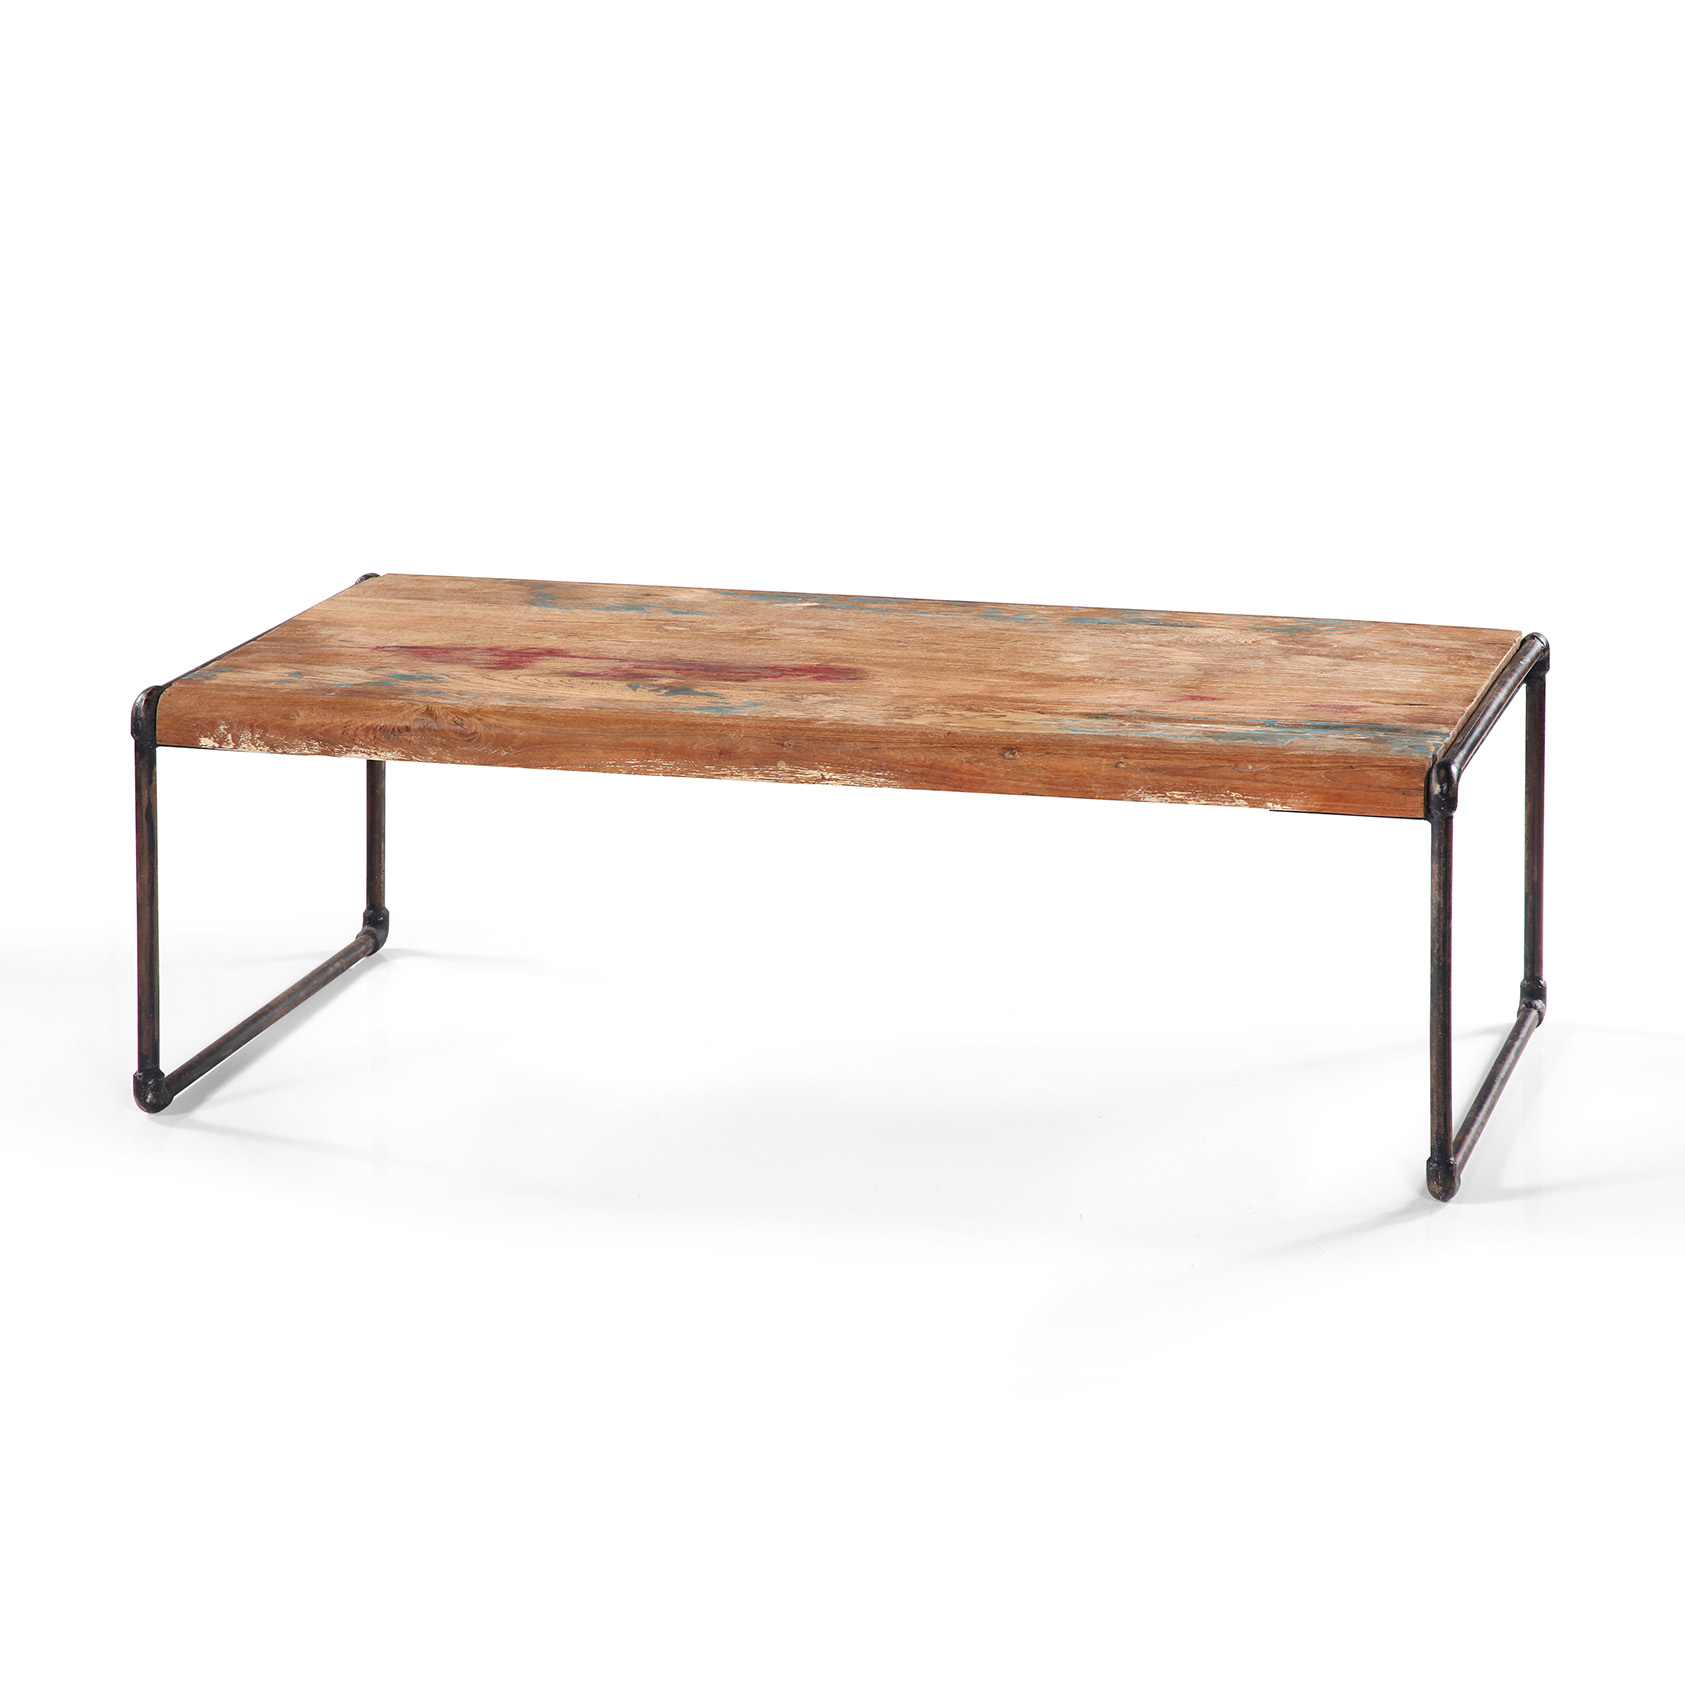 Table basse rectangulaire en teck massif recycl lombock for Table basse rectangulaire bois